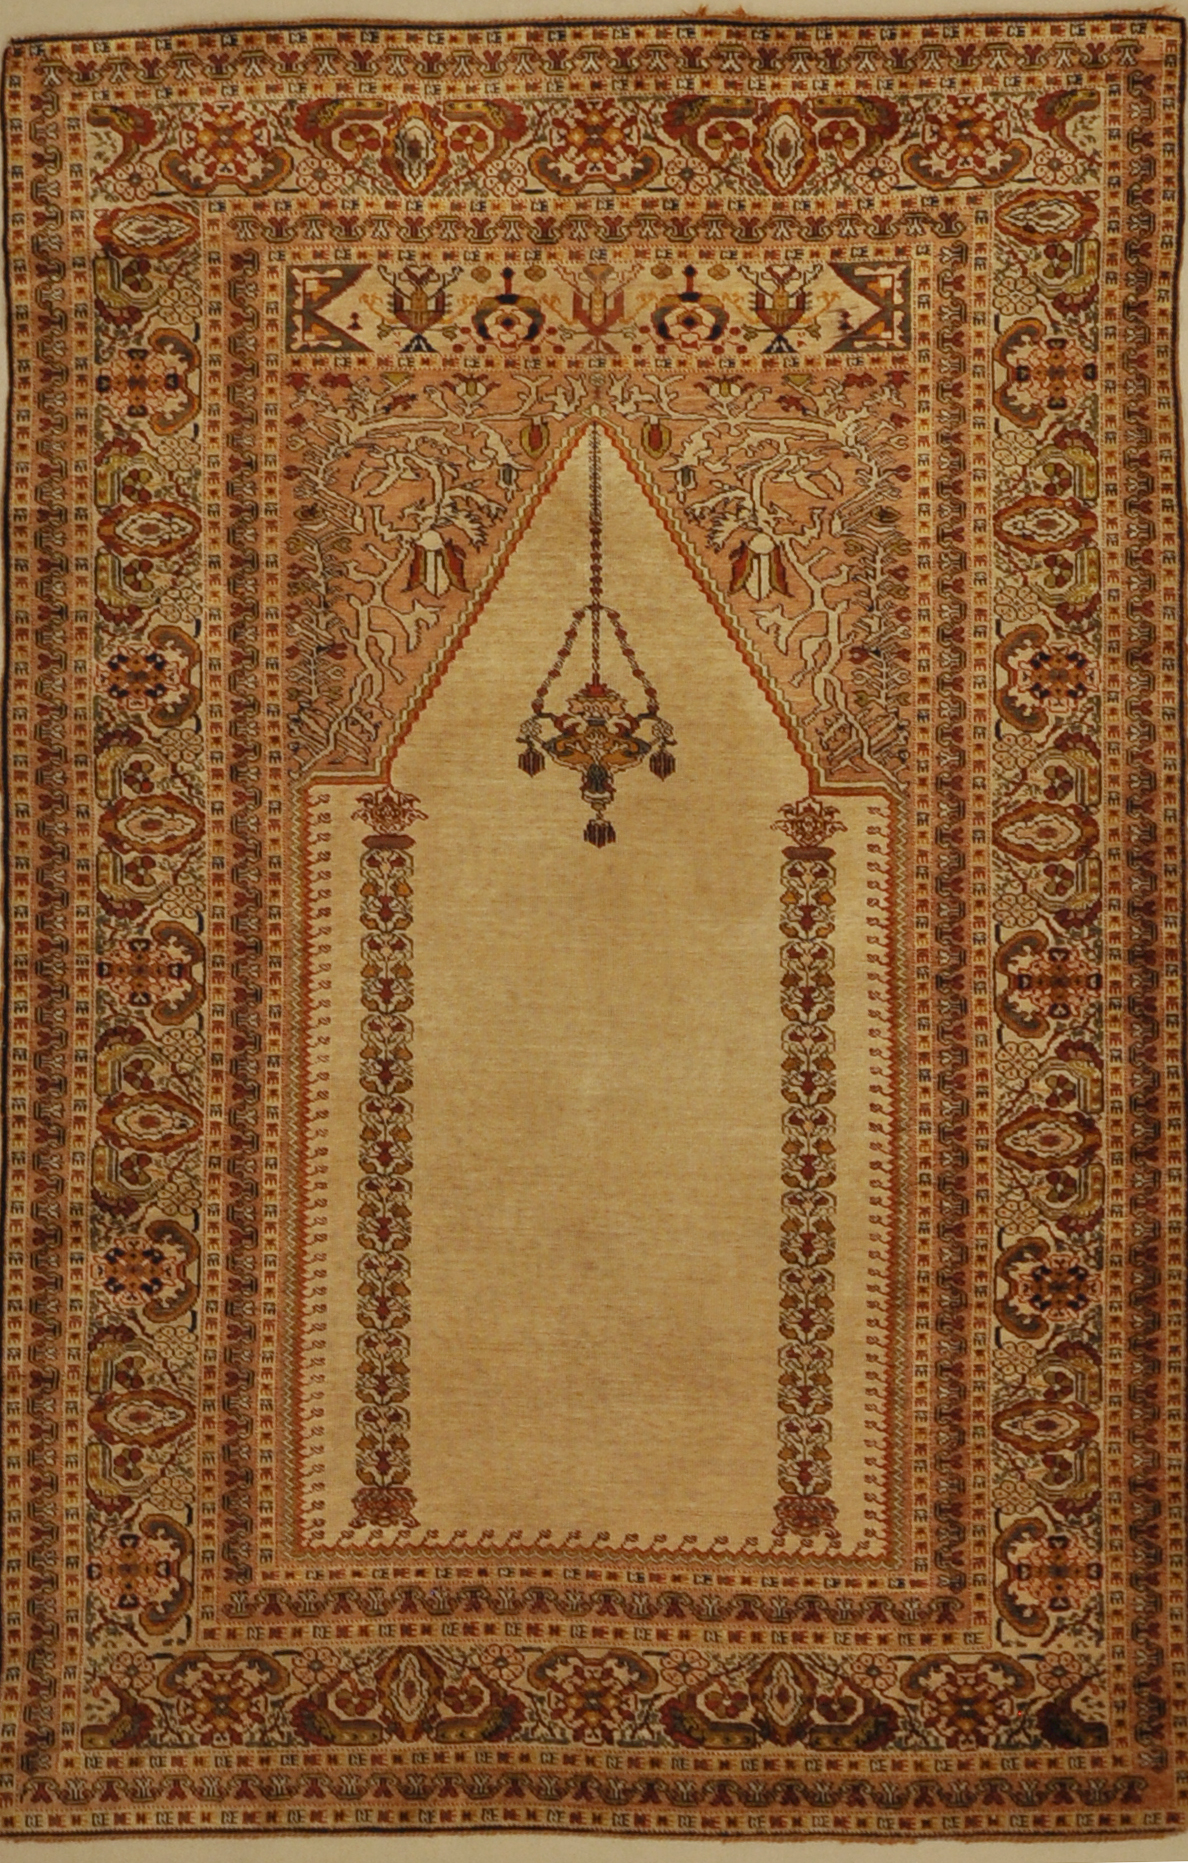 Antique Goerdes Prayer Rug Santa Barbara Design center 30025